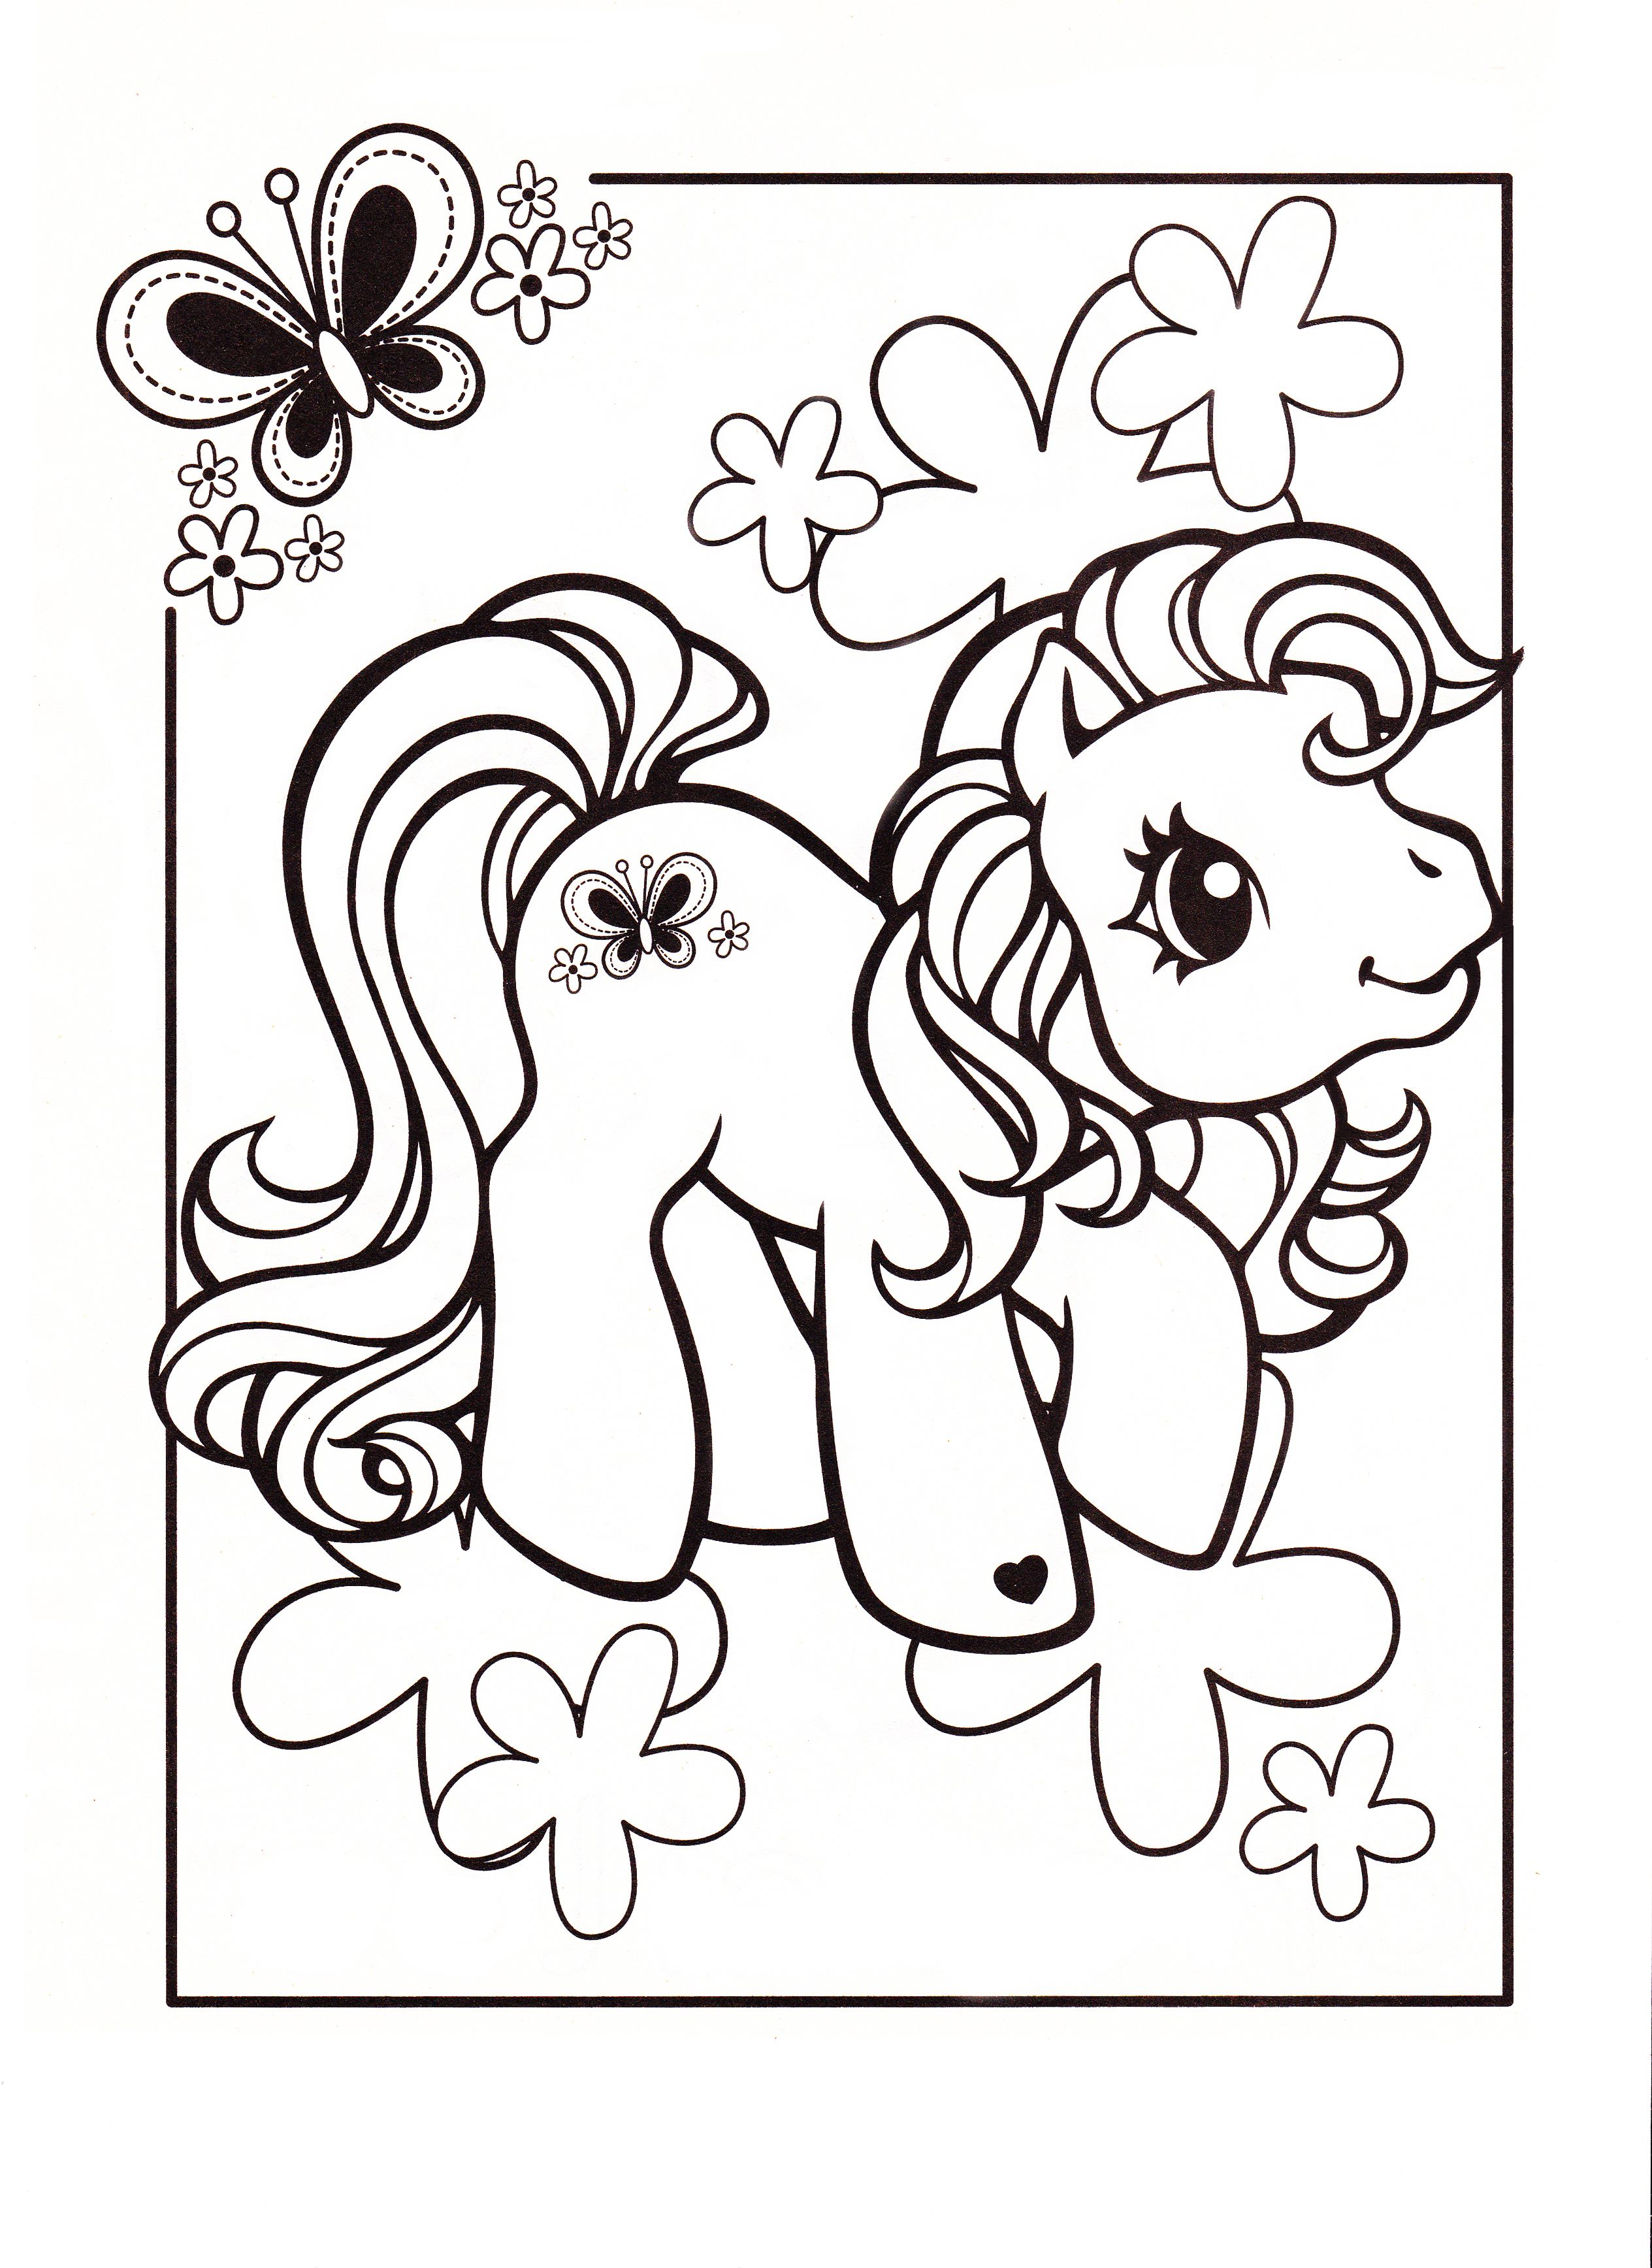 My Little Pony Equestria Girl 3 Ausmalbilder : My Little Pony Coloring Page Mlp Scootaloo Coloring Pages